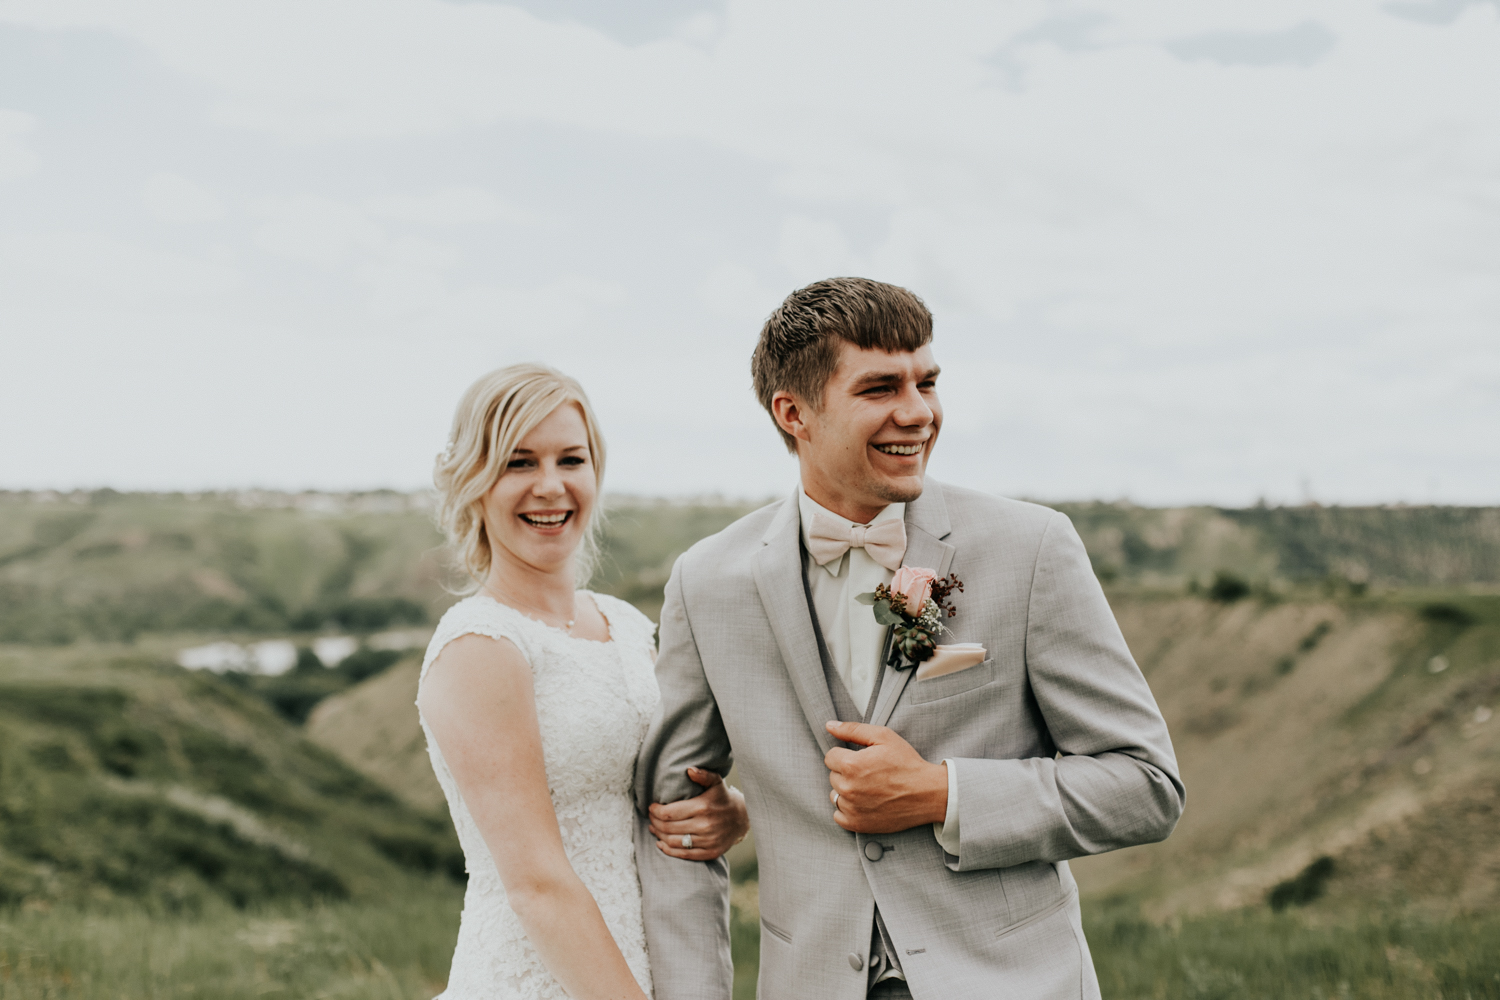 norland-estate-wedding-lethbridge-photography-love-and-be-loved-photographer-picture-image-photo-64.jpg